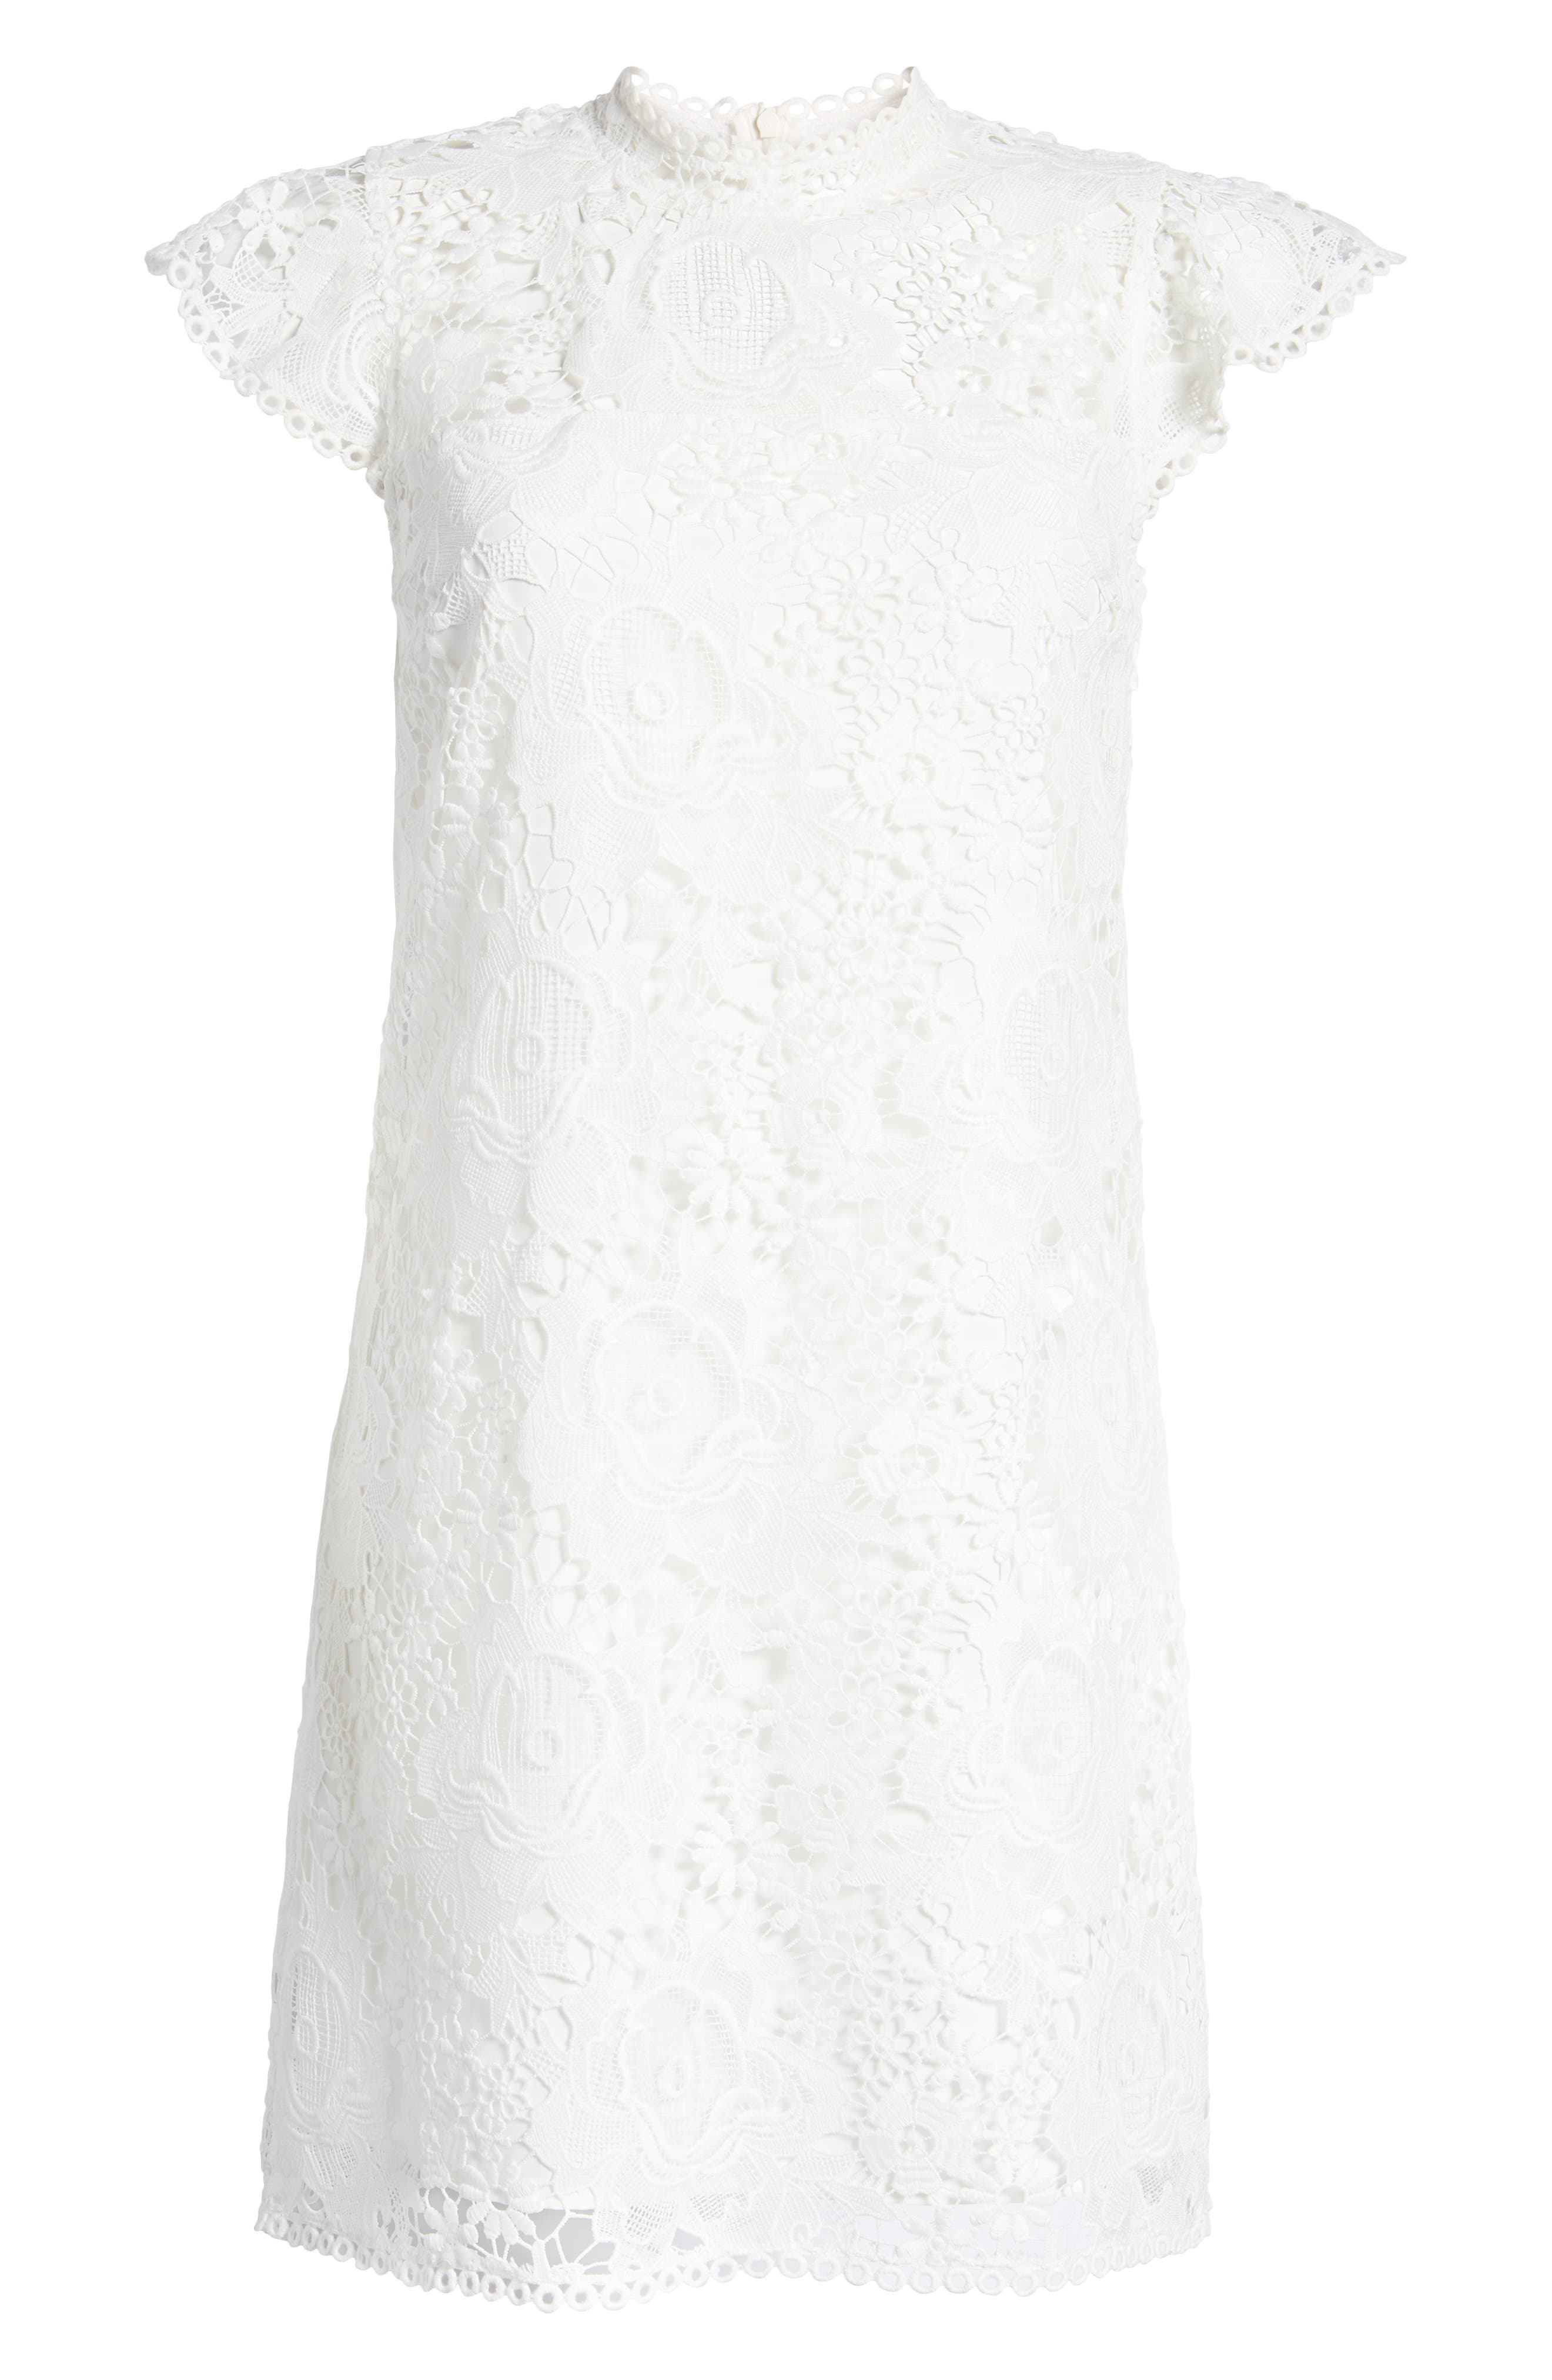 CUPCAKES AND CASHMERE, Floral Lace Shift Dress, Alternate thumbnail 7, color, WHITE